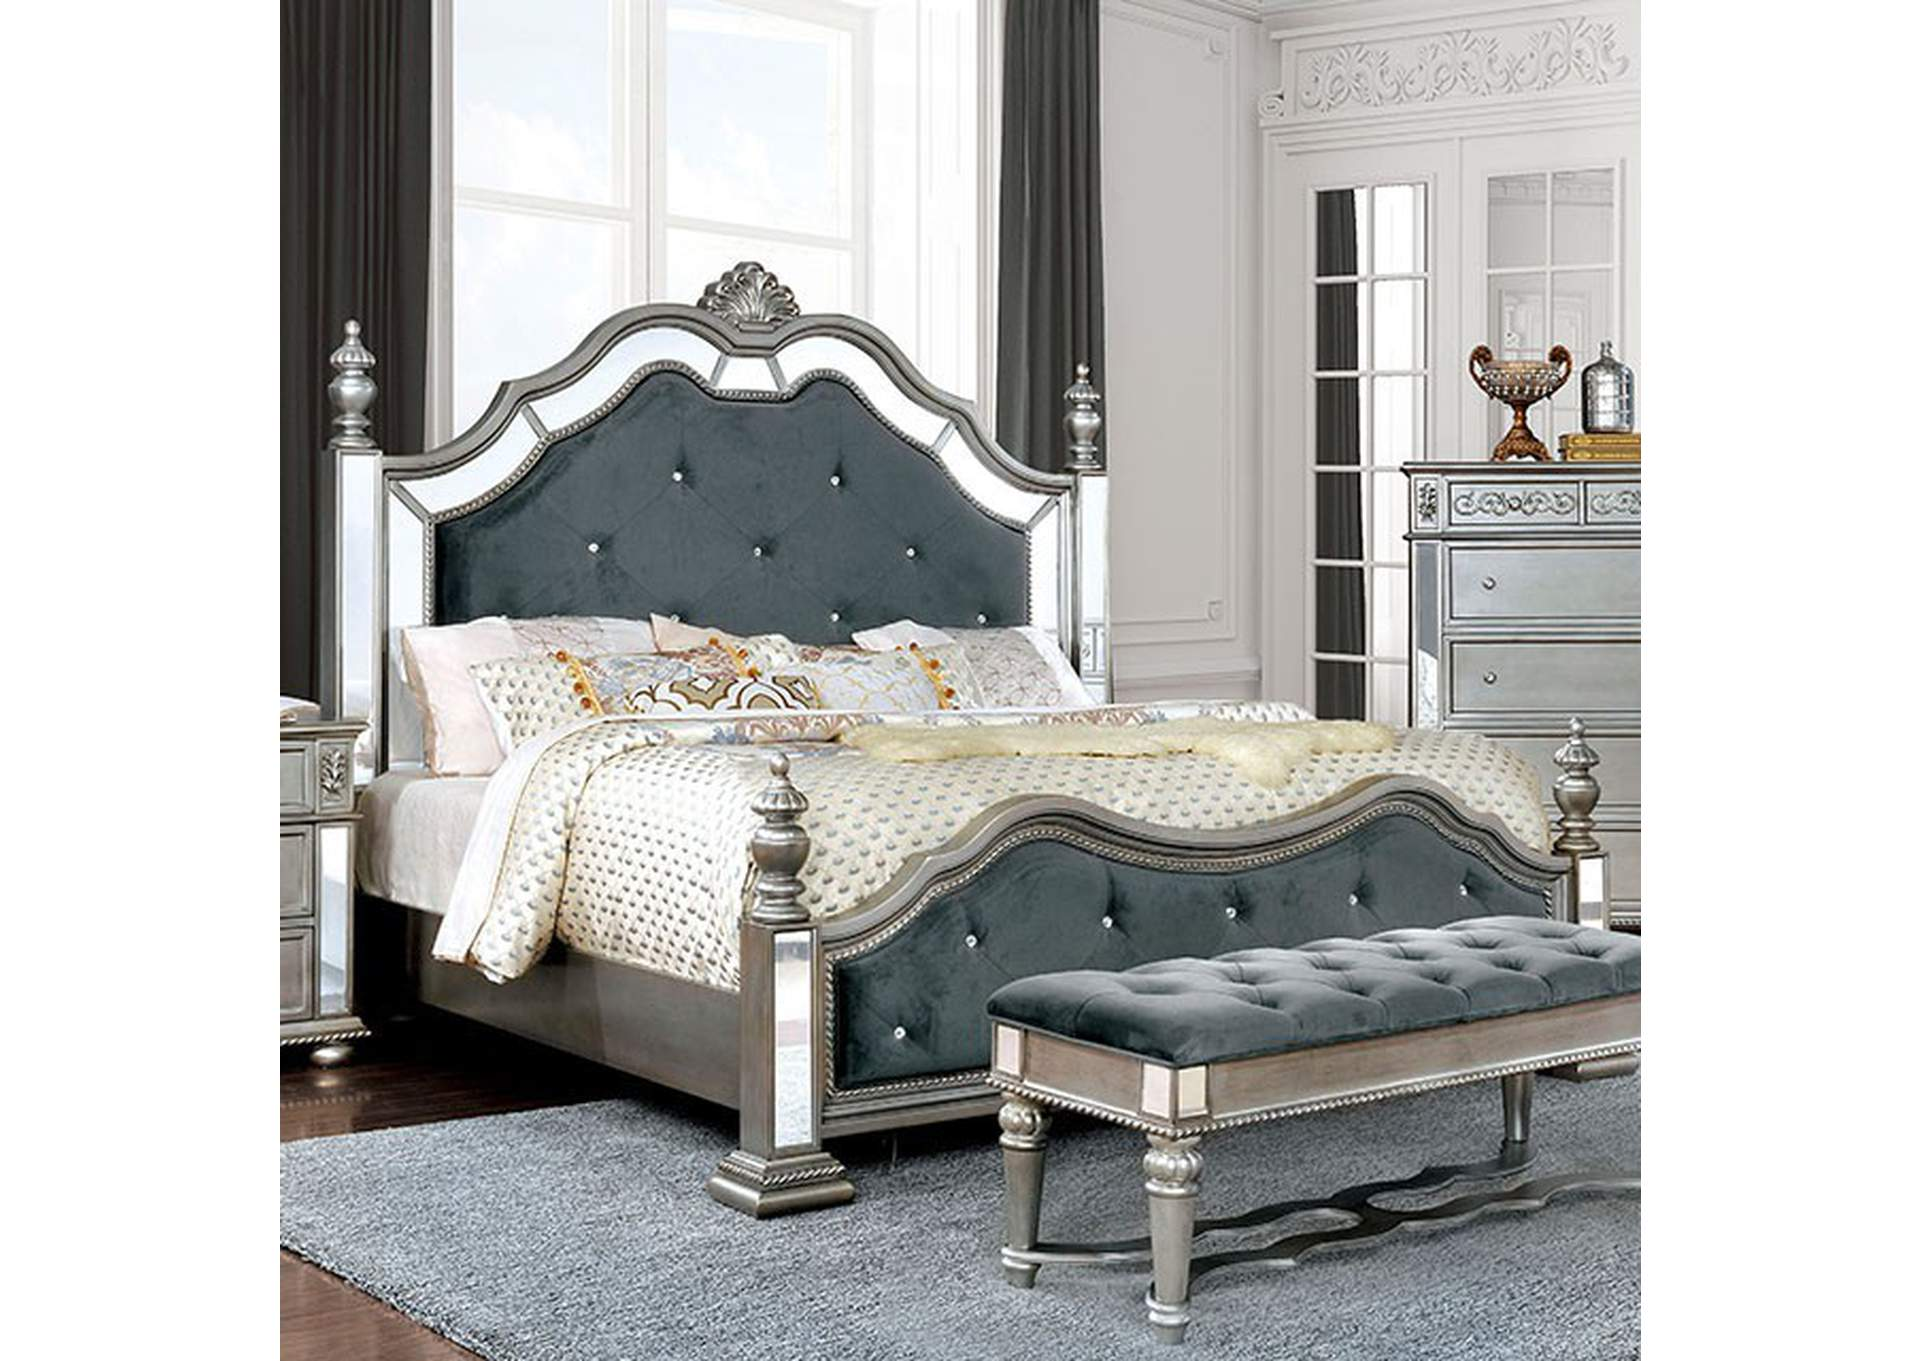 Azha Silver/Gray Upholstered Queen Low Poster Bed,Furniture of America